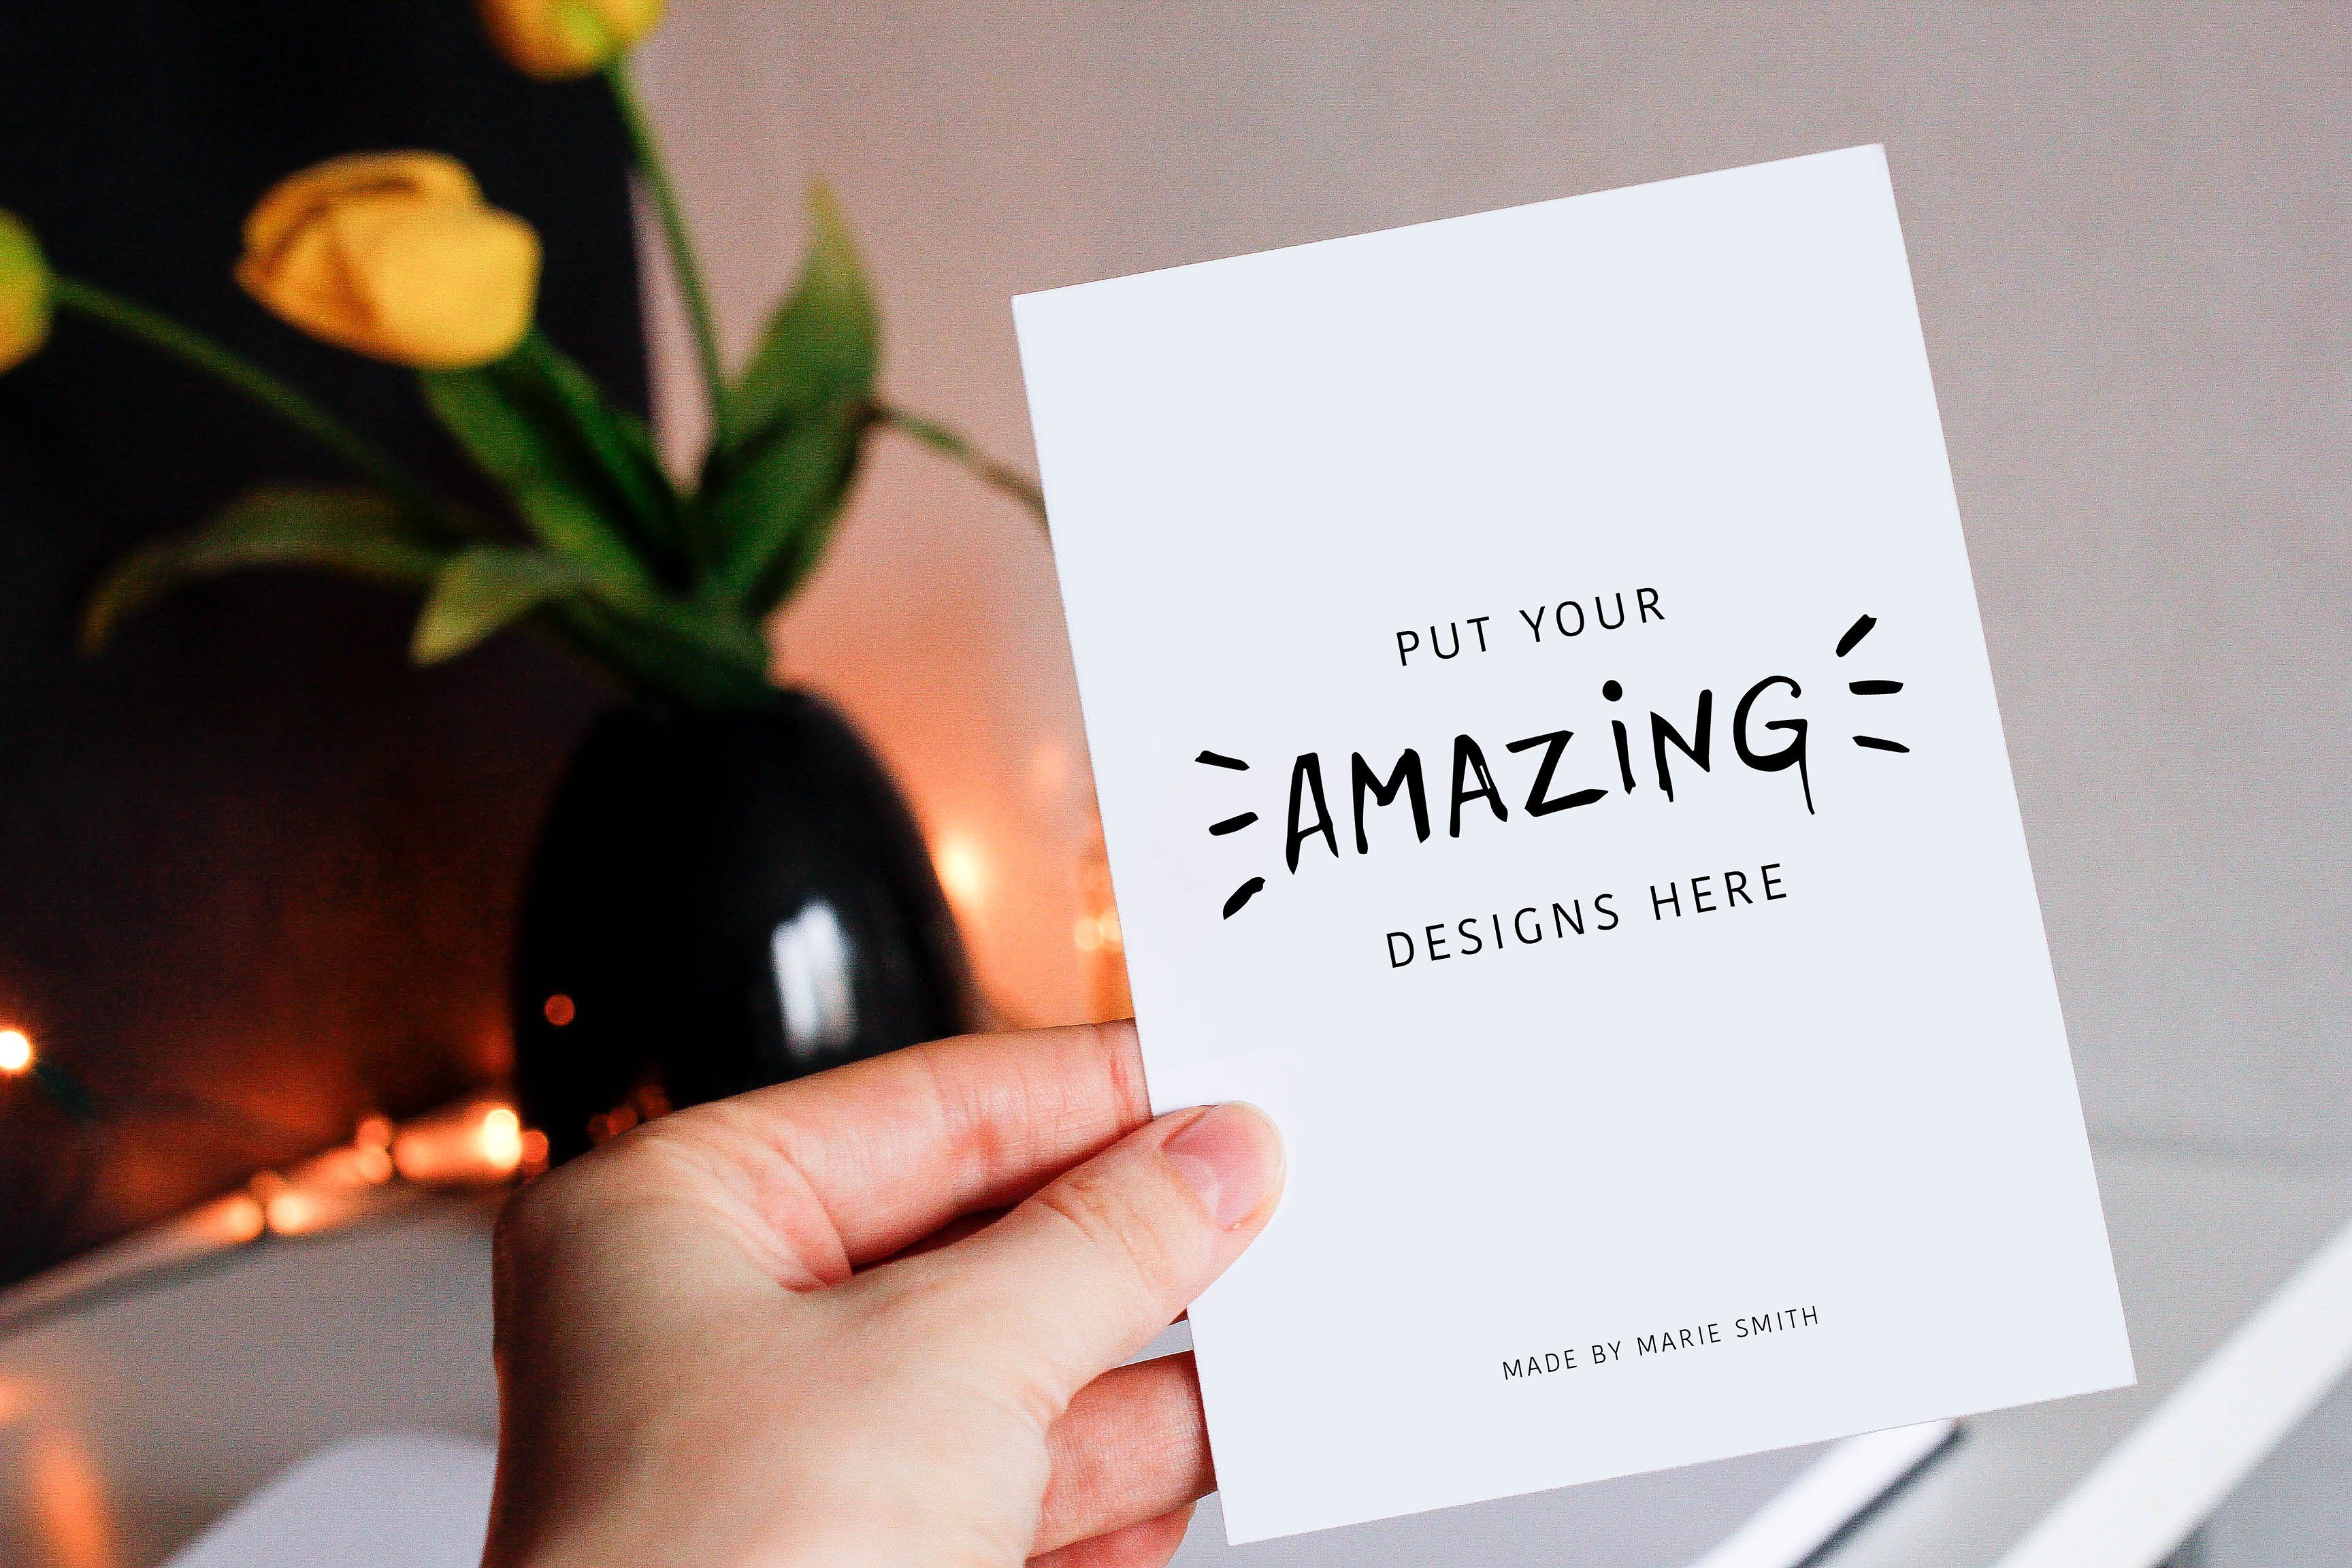 175 Mockups Free Postcard Mockups By Marie Smth On Creativemarket